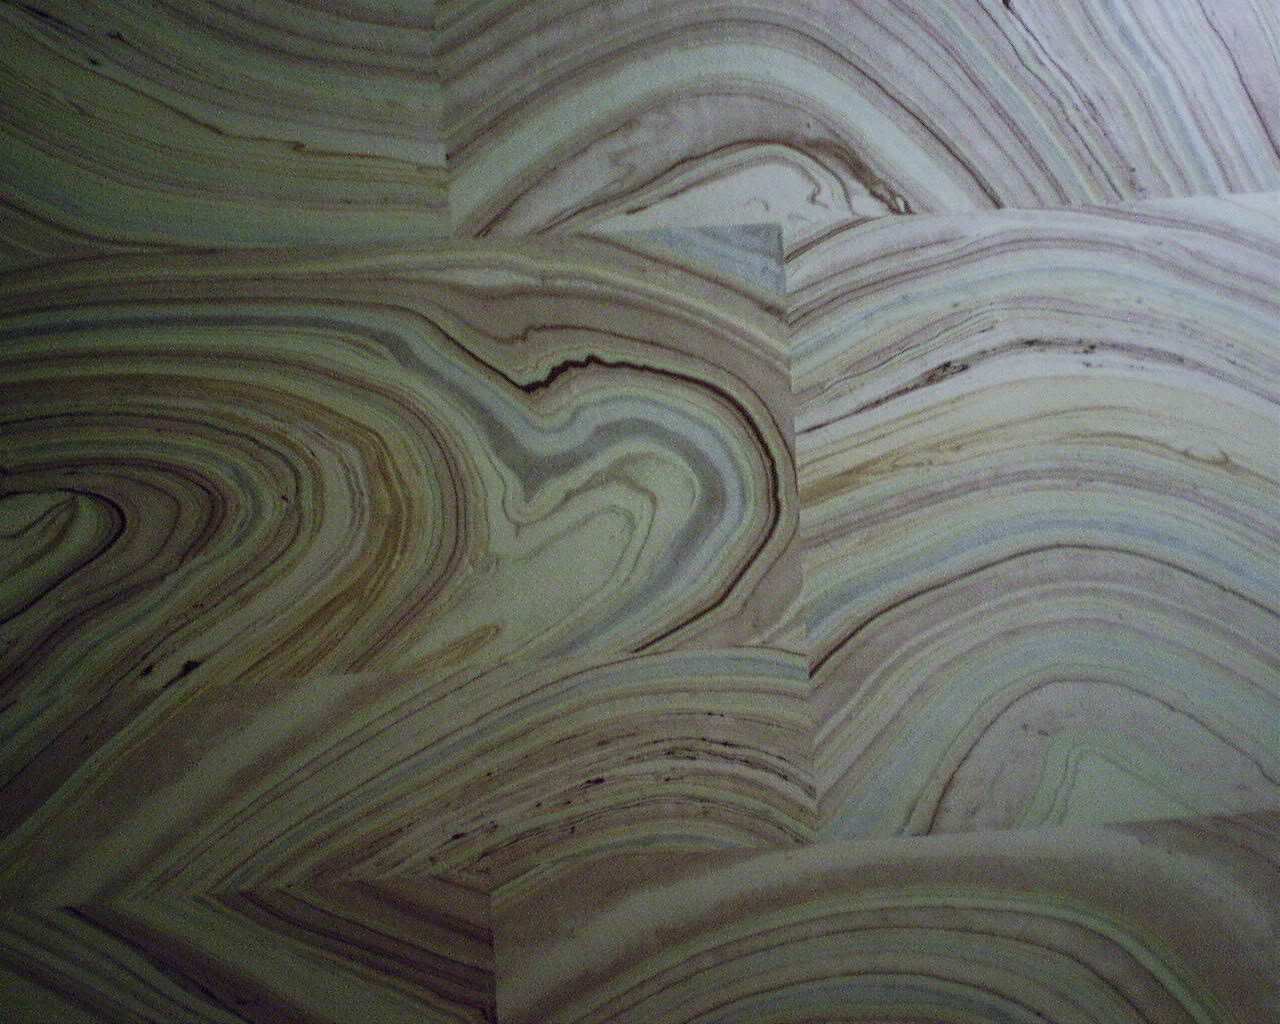 agate wallpaper borders with rocks - photo #9